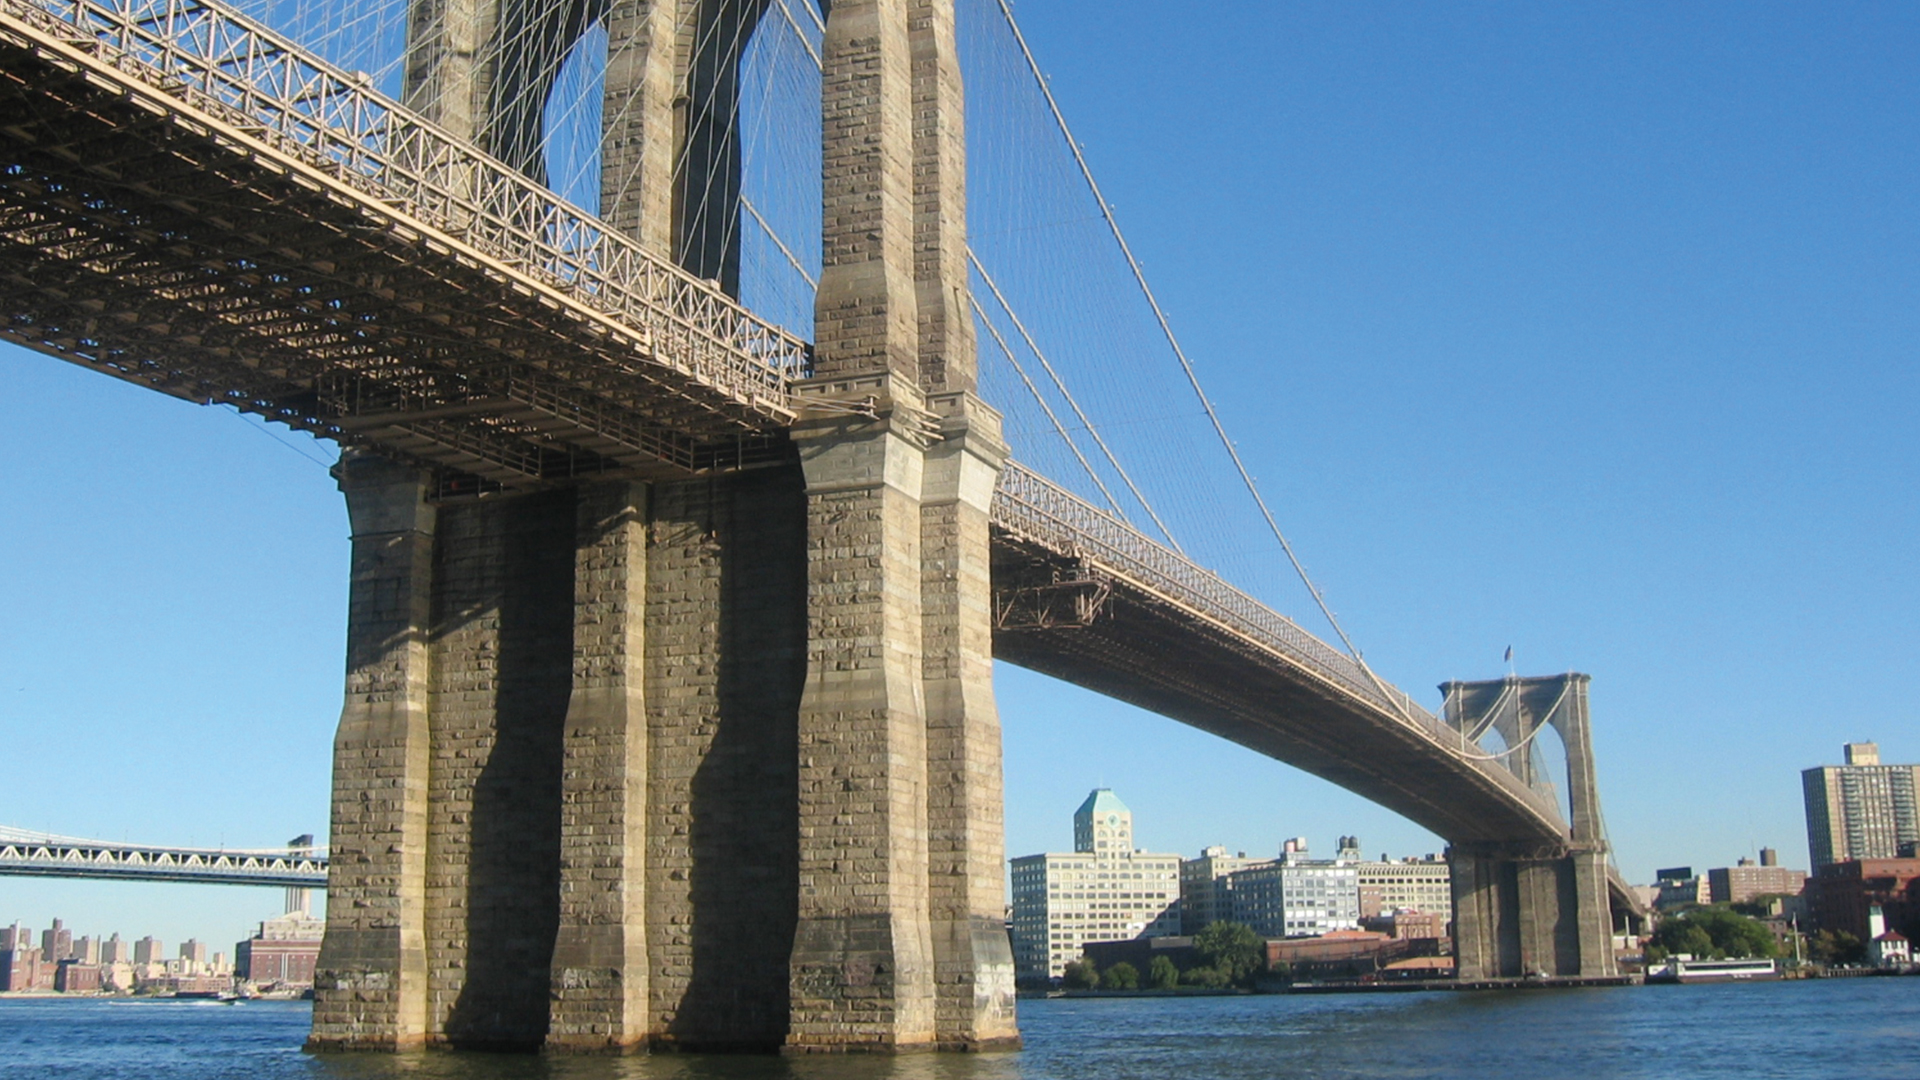 descriptive essay brooklyn bridge 36 the brooklyn bridge essay examples from trust writing company eliteessaywriters get more persuasive, argumentative the brooklyn bridge essay samples and other research papers after sing up.